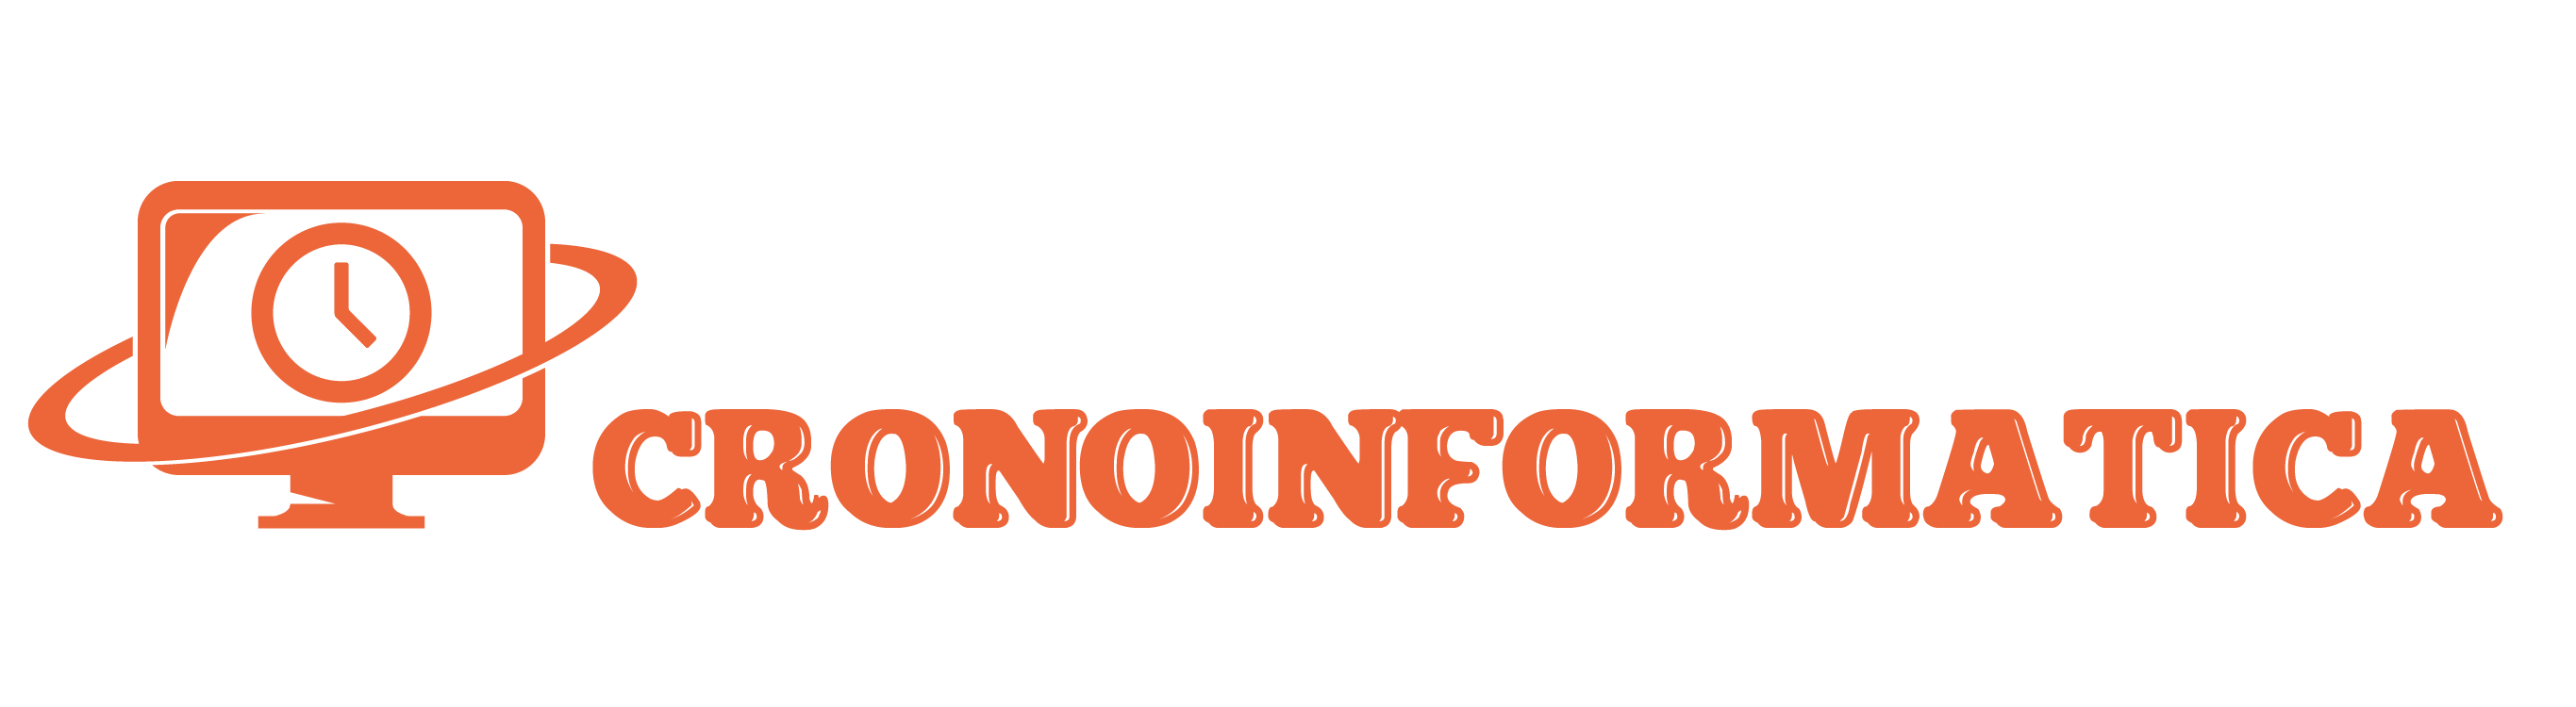 Banner-CronoInformatica-1.png